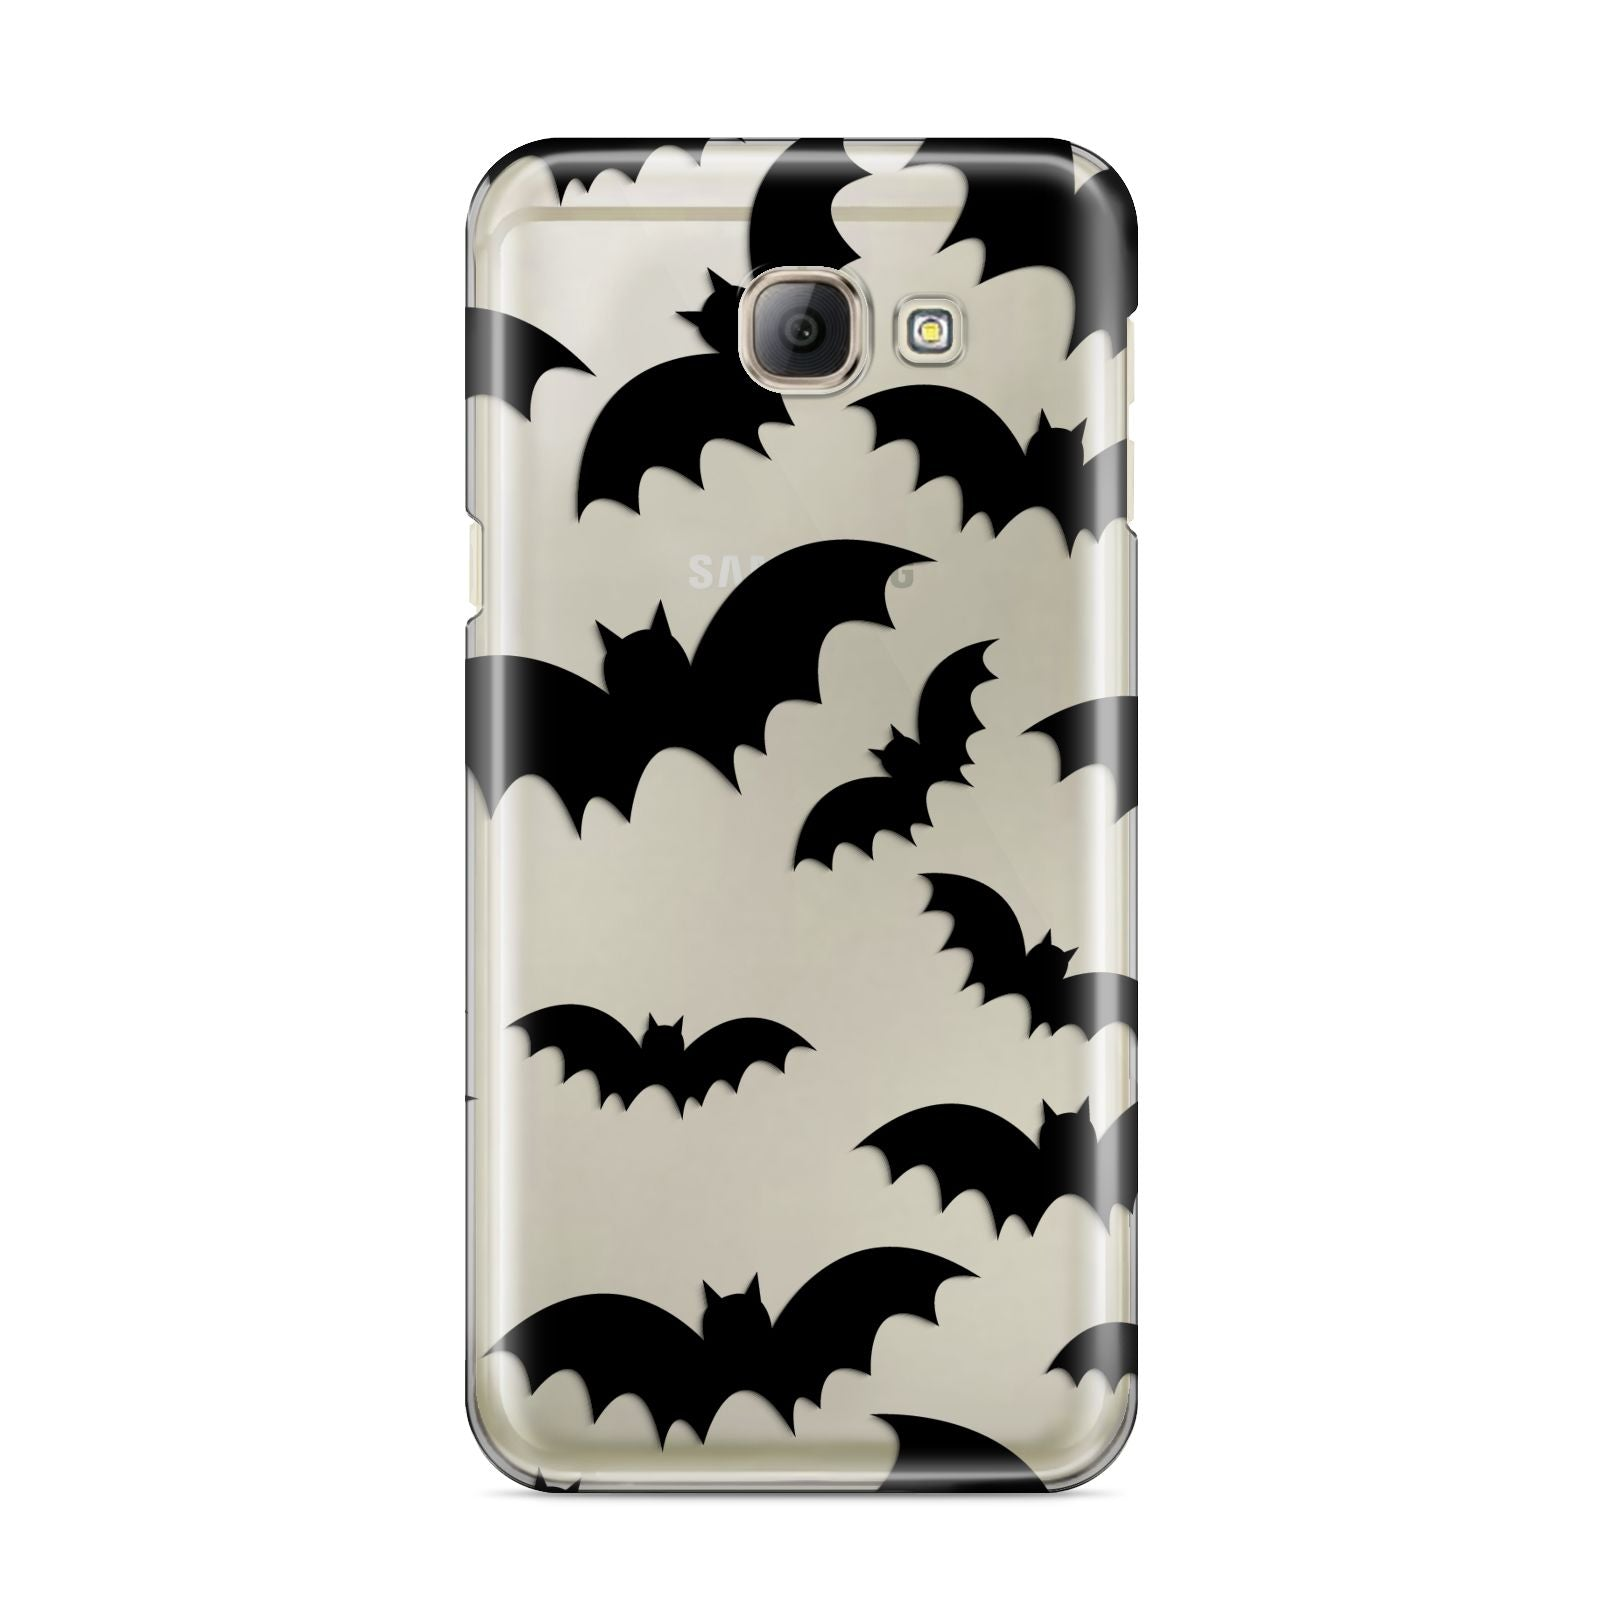 Bat Halloween Print Samsung Galaxy A8 2016 Case